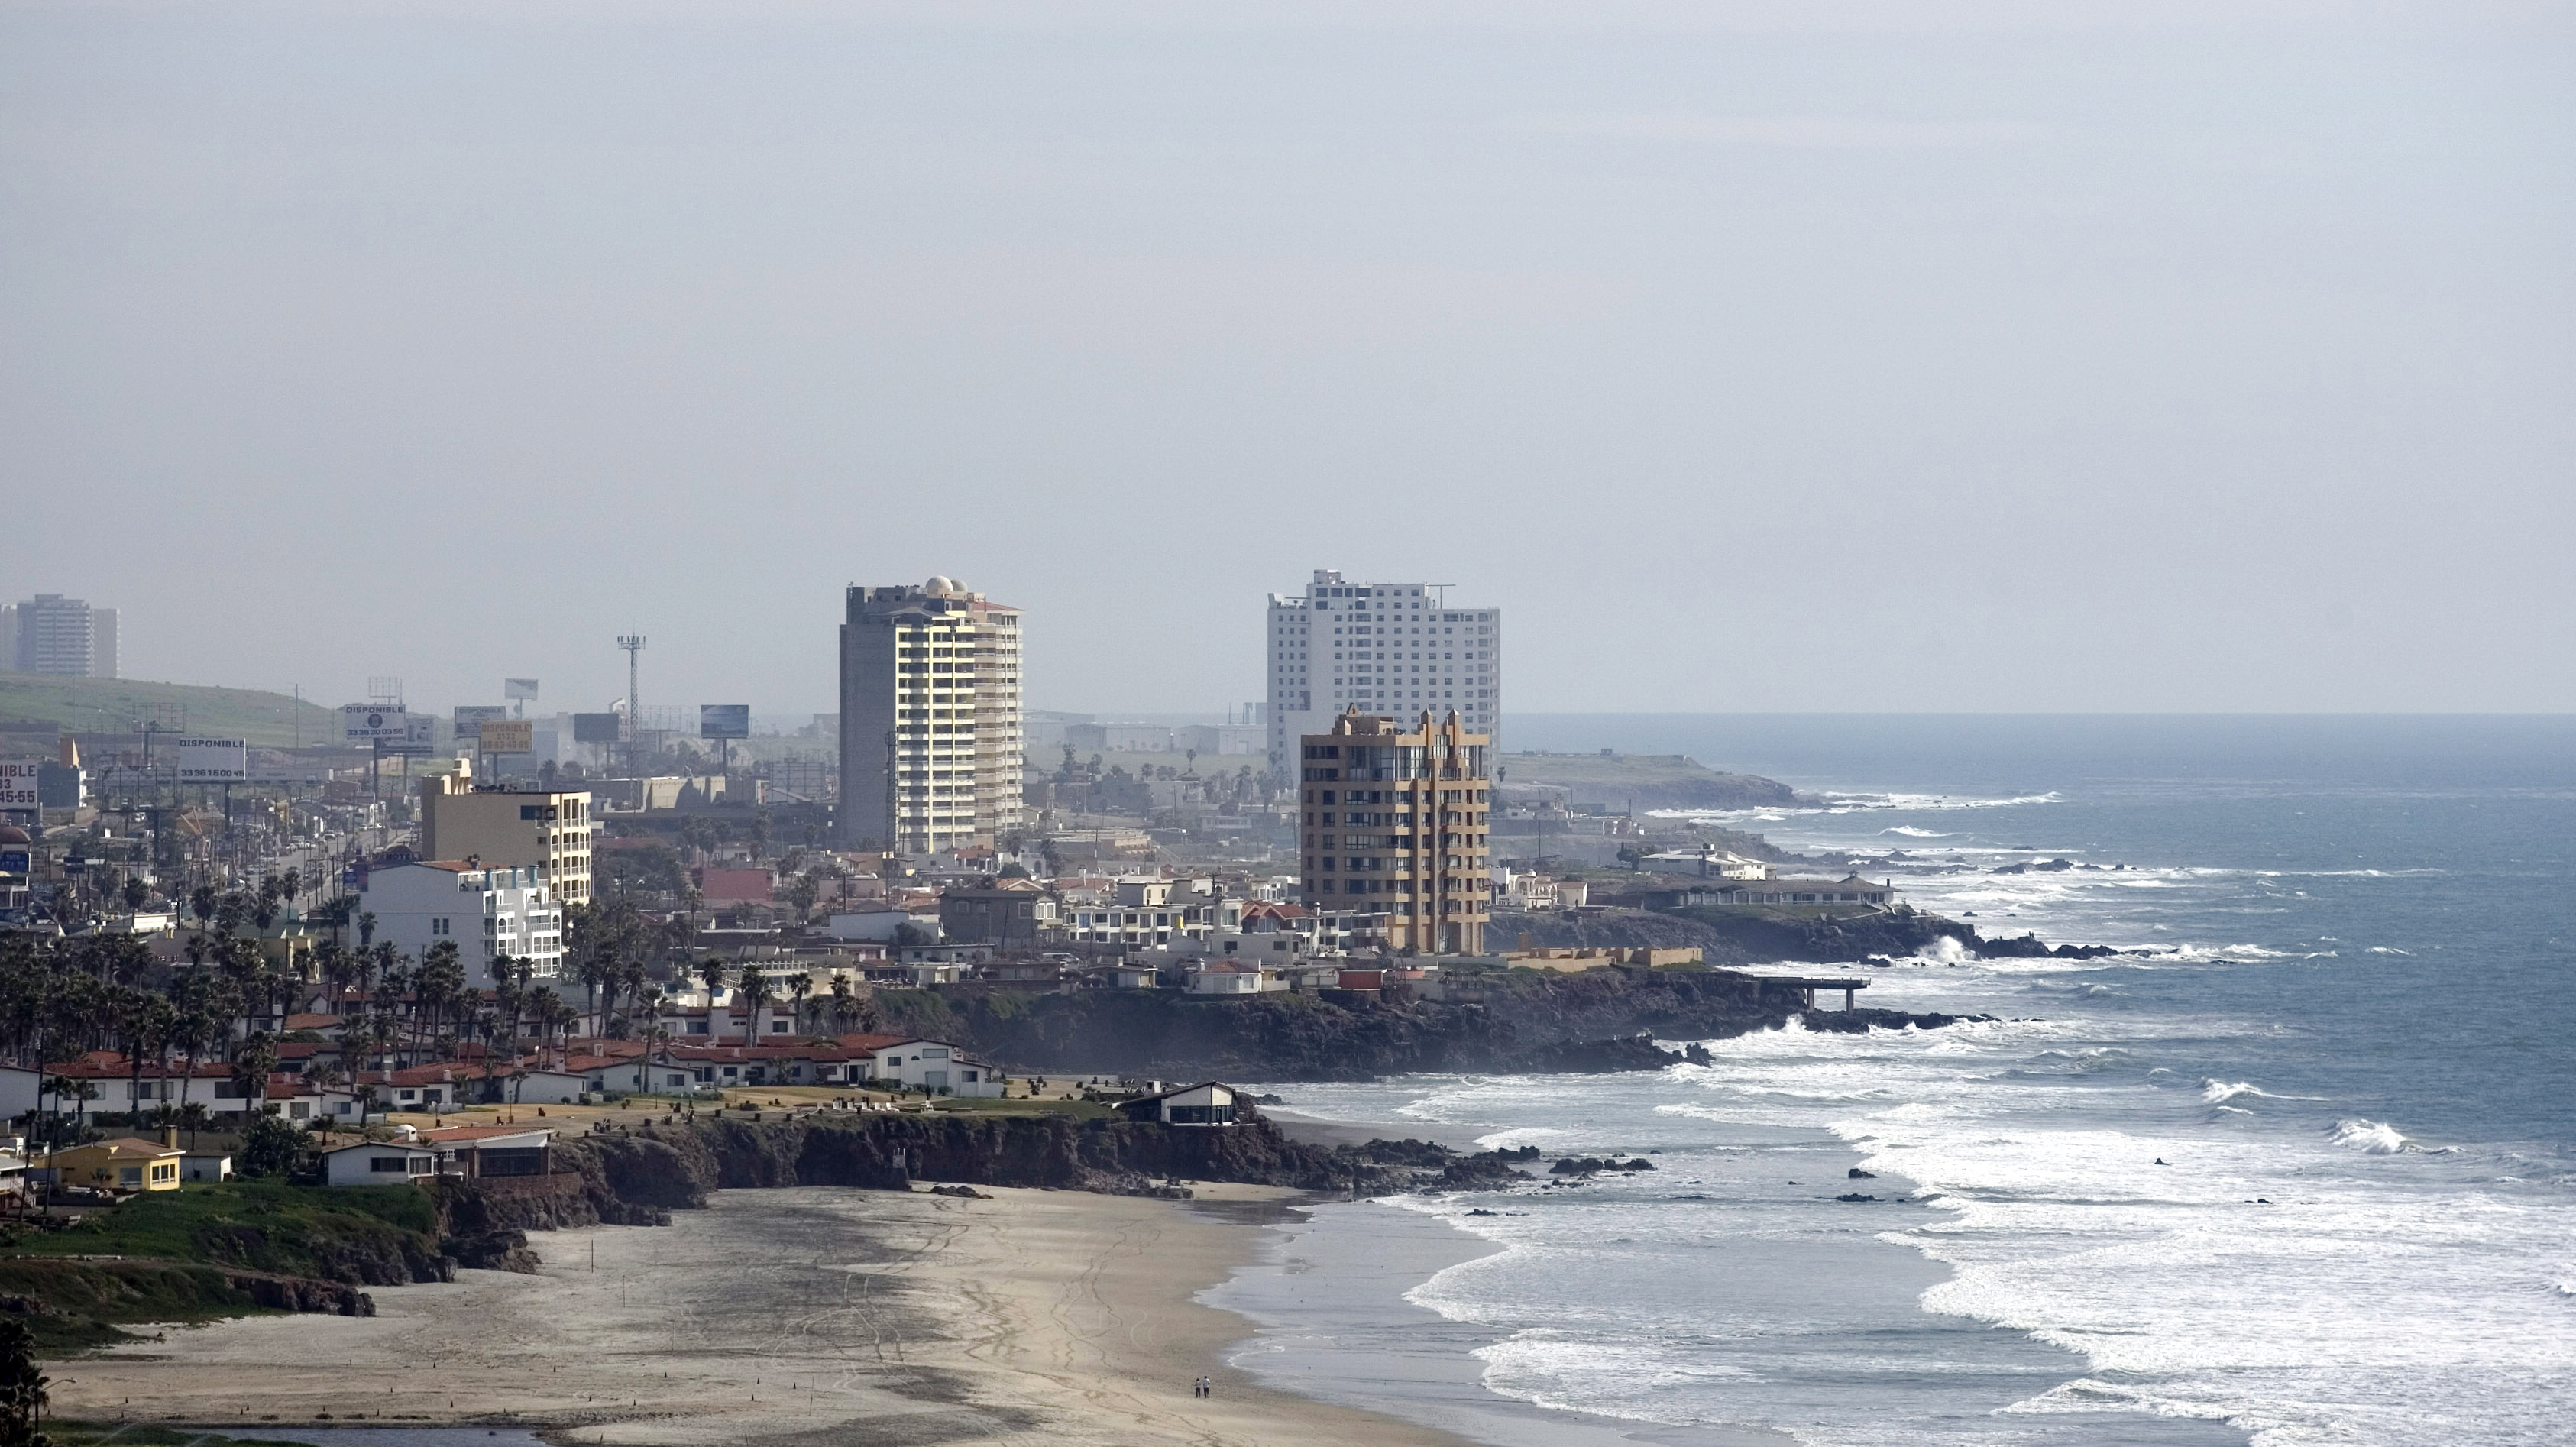 Americans Might Soon Get To Buy Mexican Beachfront, Border Land